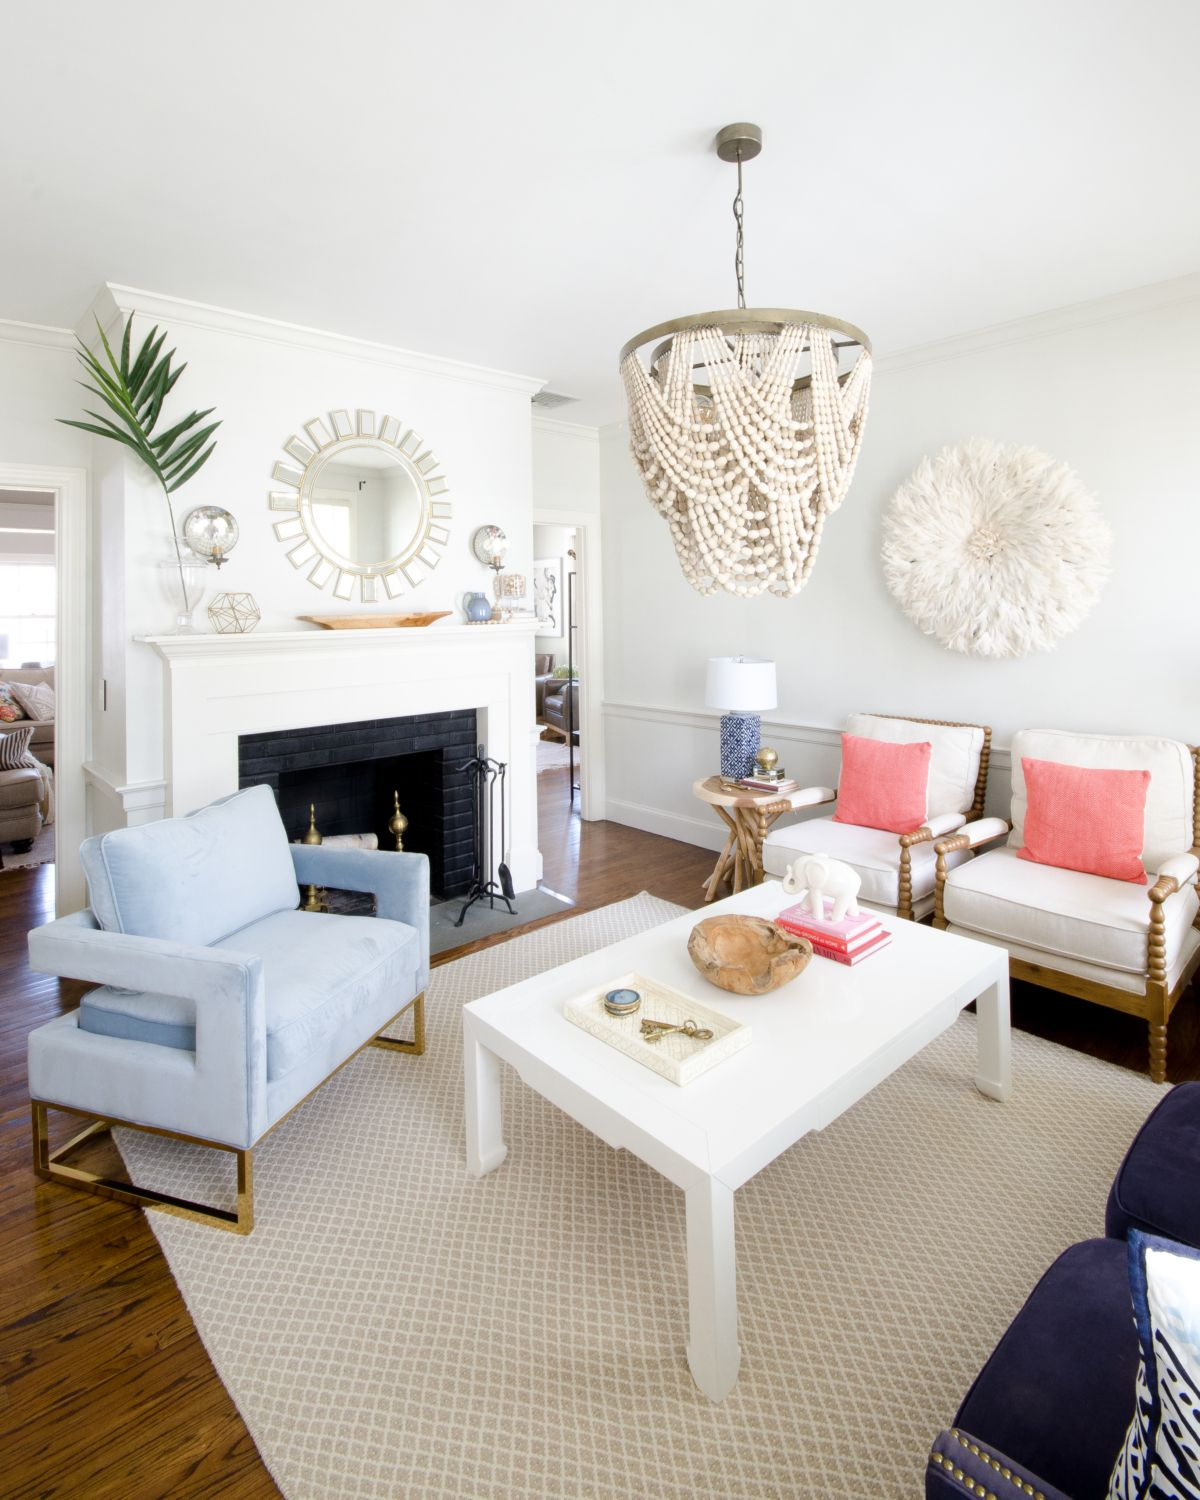 Beaded Pendant Light in a Classic / Boho Living Room | Pendant ...